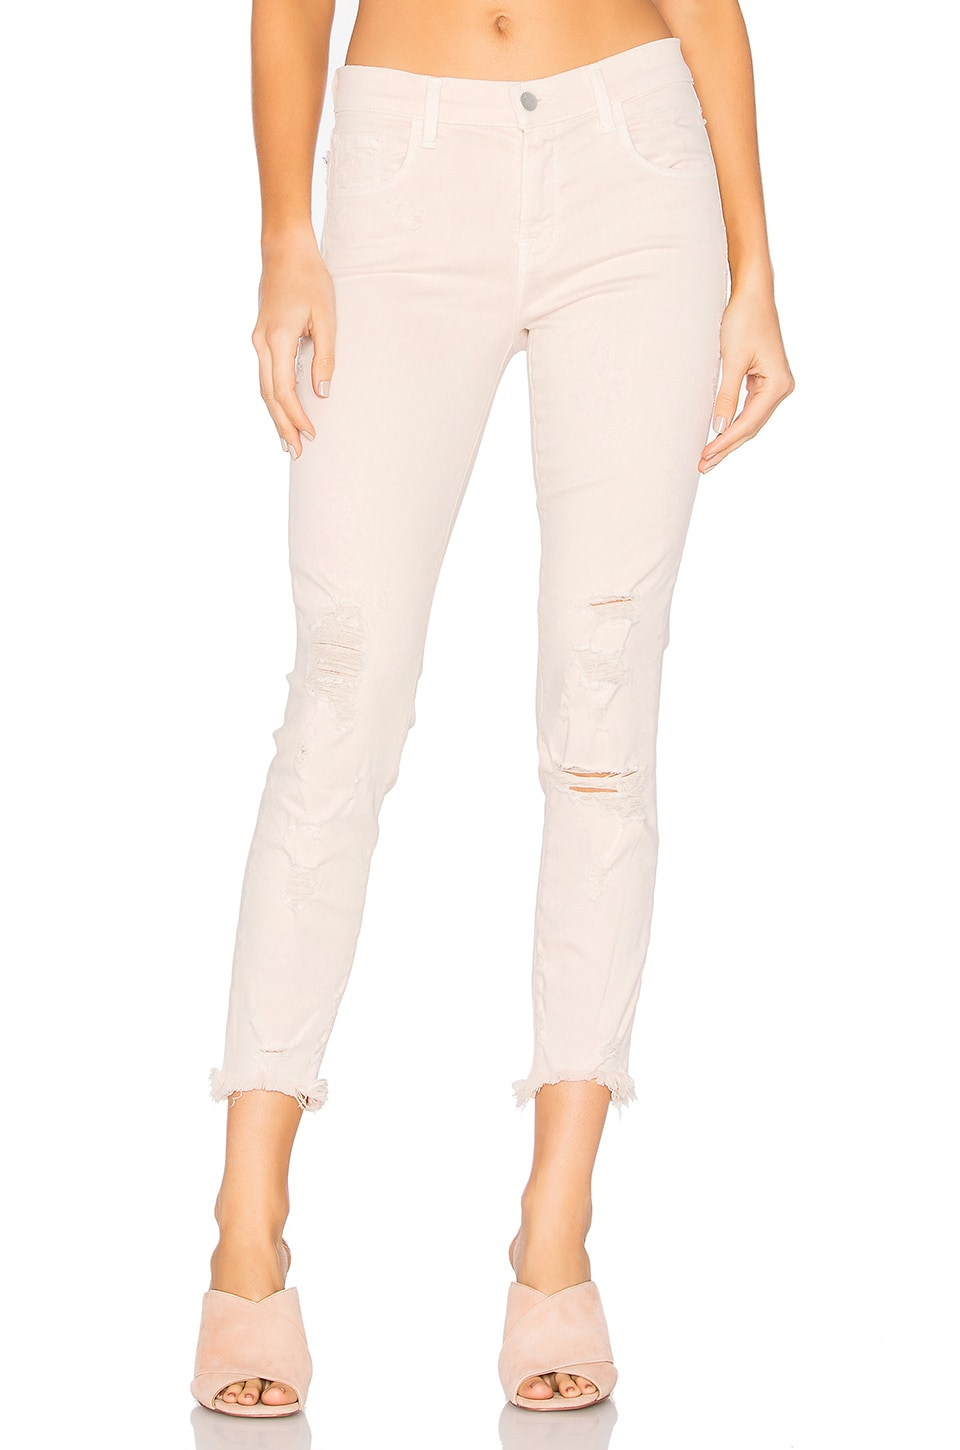 J Brand 835 High Low Hem Crop in Debutante